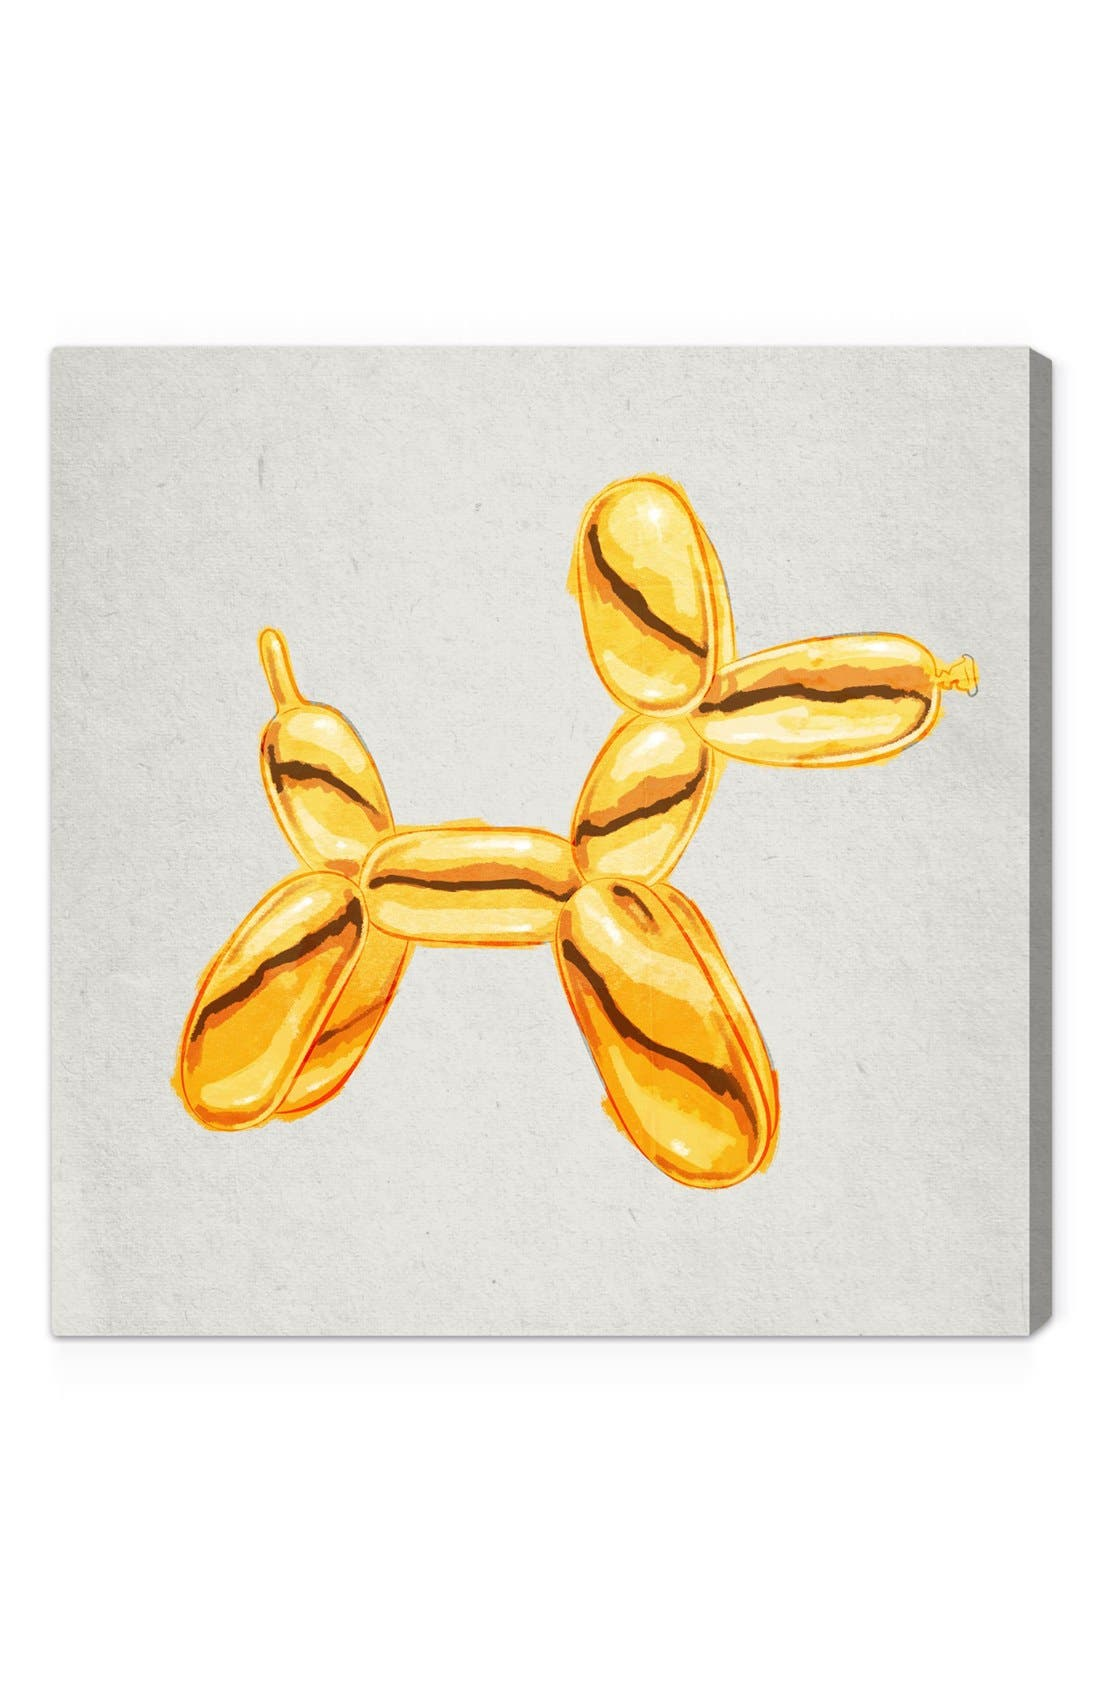 Alternate Image 1 Selected - Oliver Gal 'Balloon Dog Lux' Wall Art